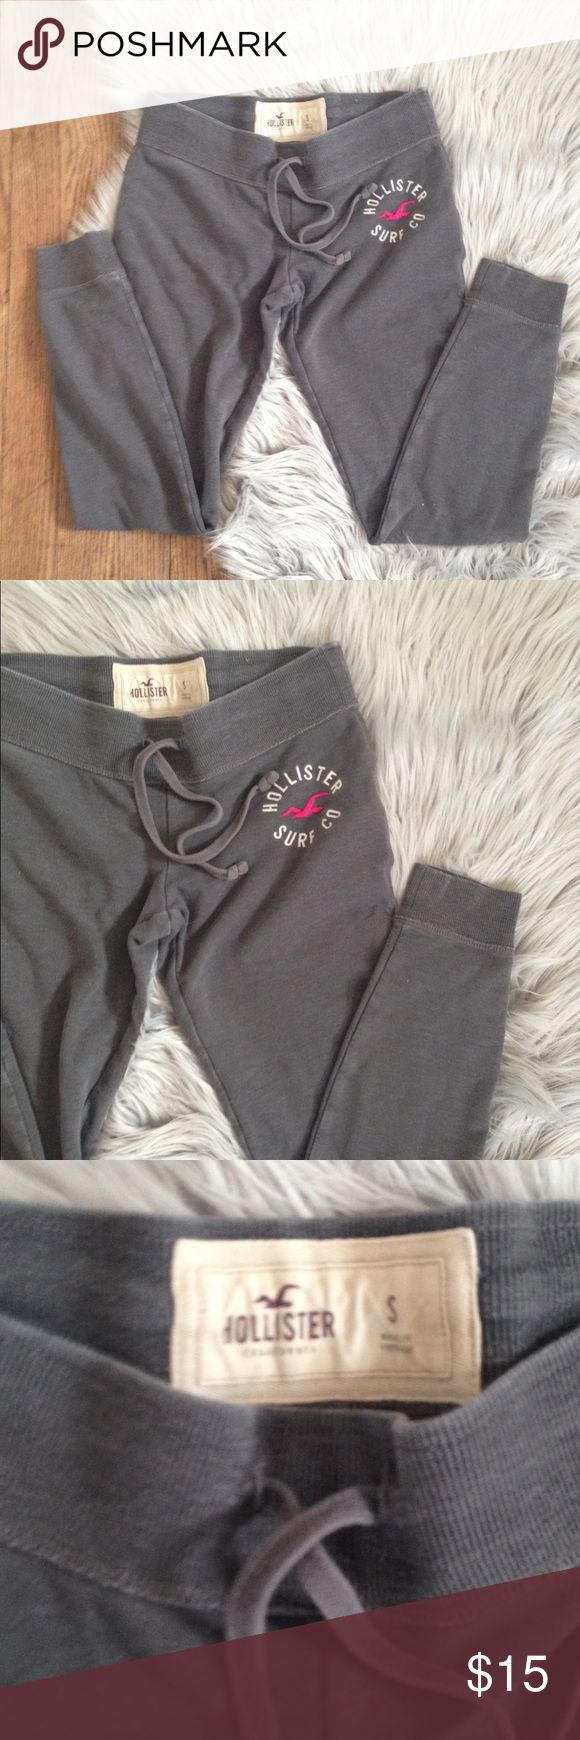 Hollister Joggers sweatpants Small Excellent used condition. Worn a handful of times. Jogger sweater pants with drawstring elastic waist. Color: gray. Size: Small. Brand: Hollister. No trades. Free gift with any purchase & 15% off all bundles. Hollister Pants Track Pants & Joggers